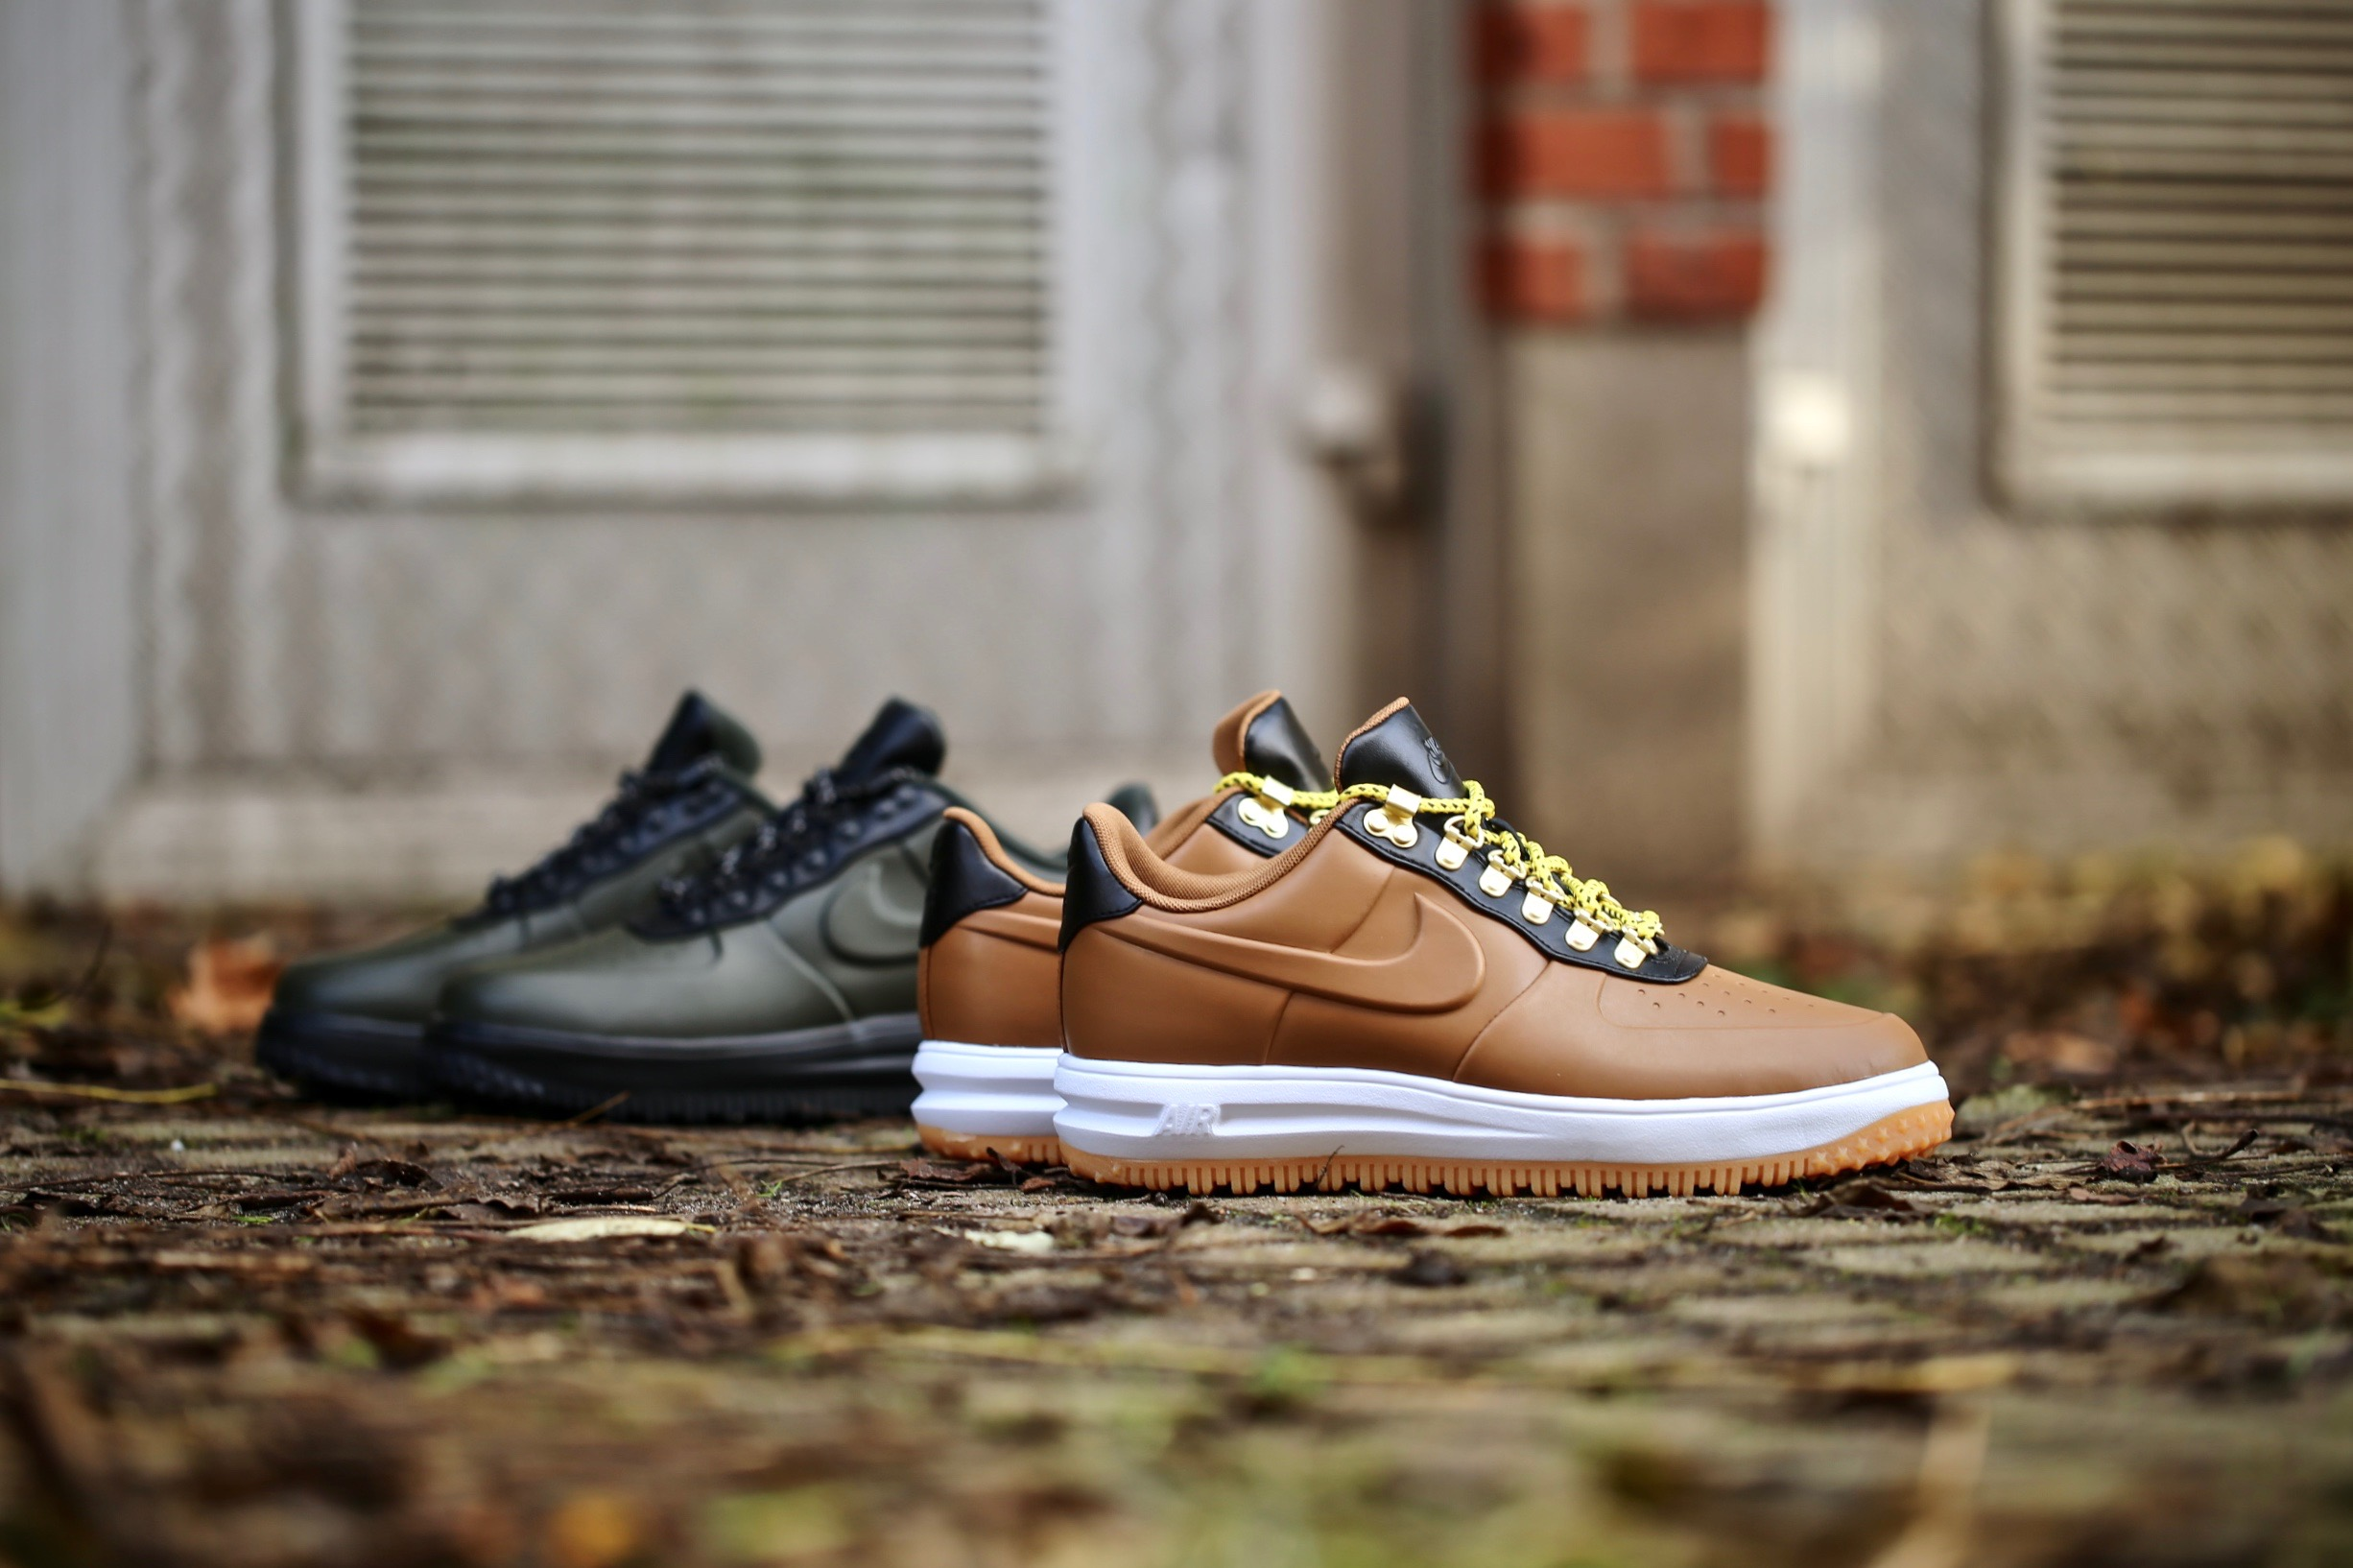 7e8a576e728c Nike Lunar Force 1 Duckboot Low – Ale Brown   Black   White – STASP